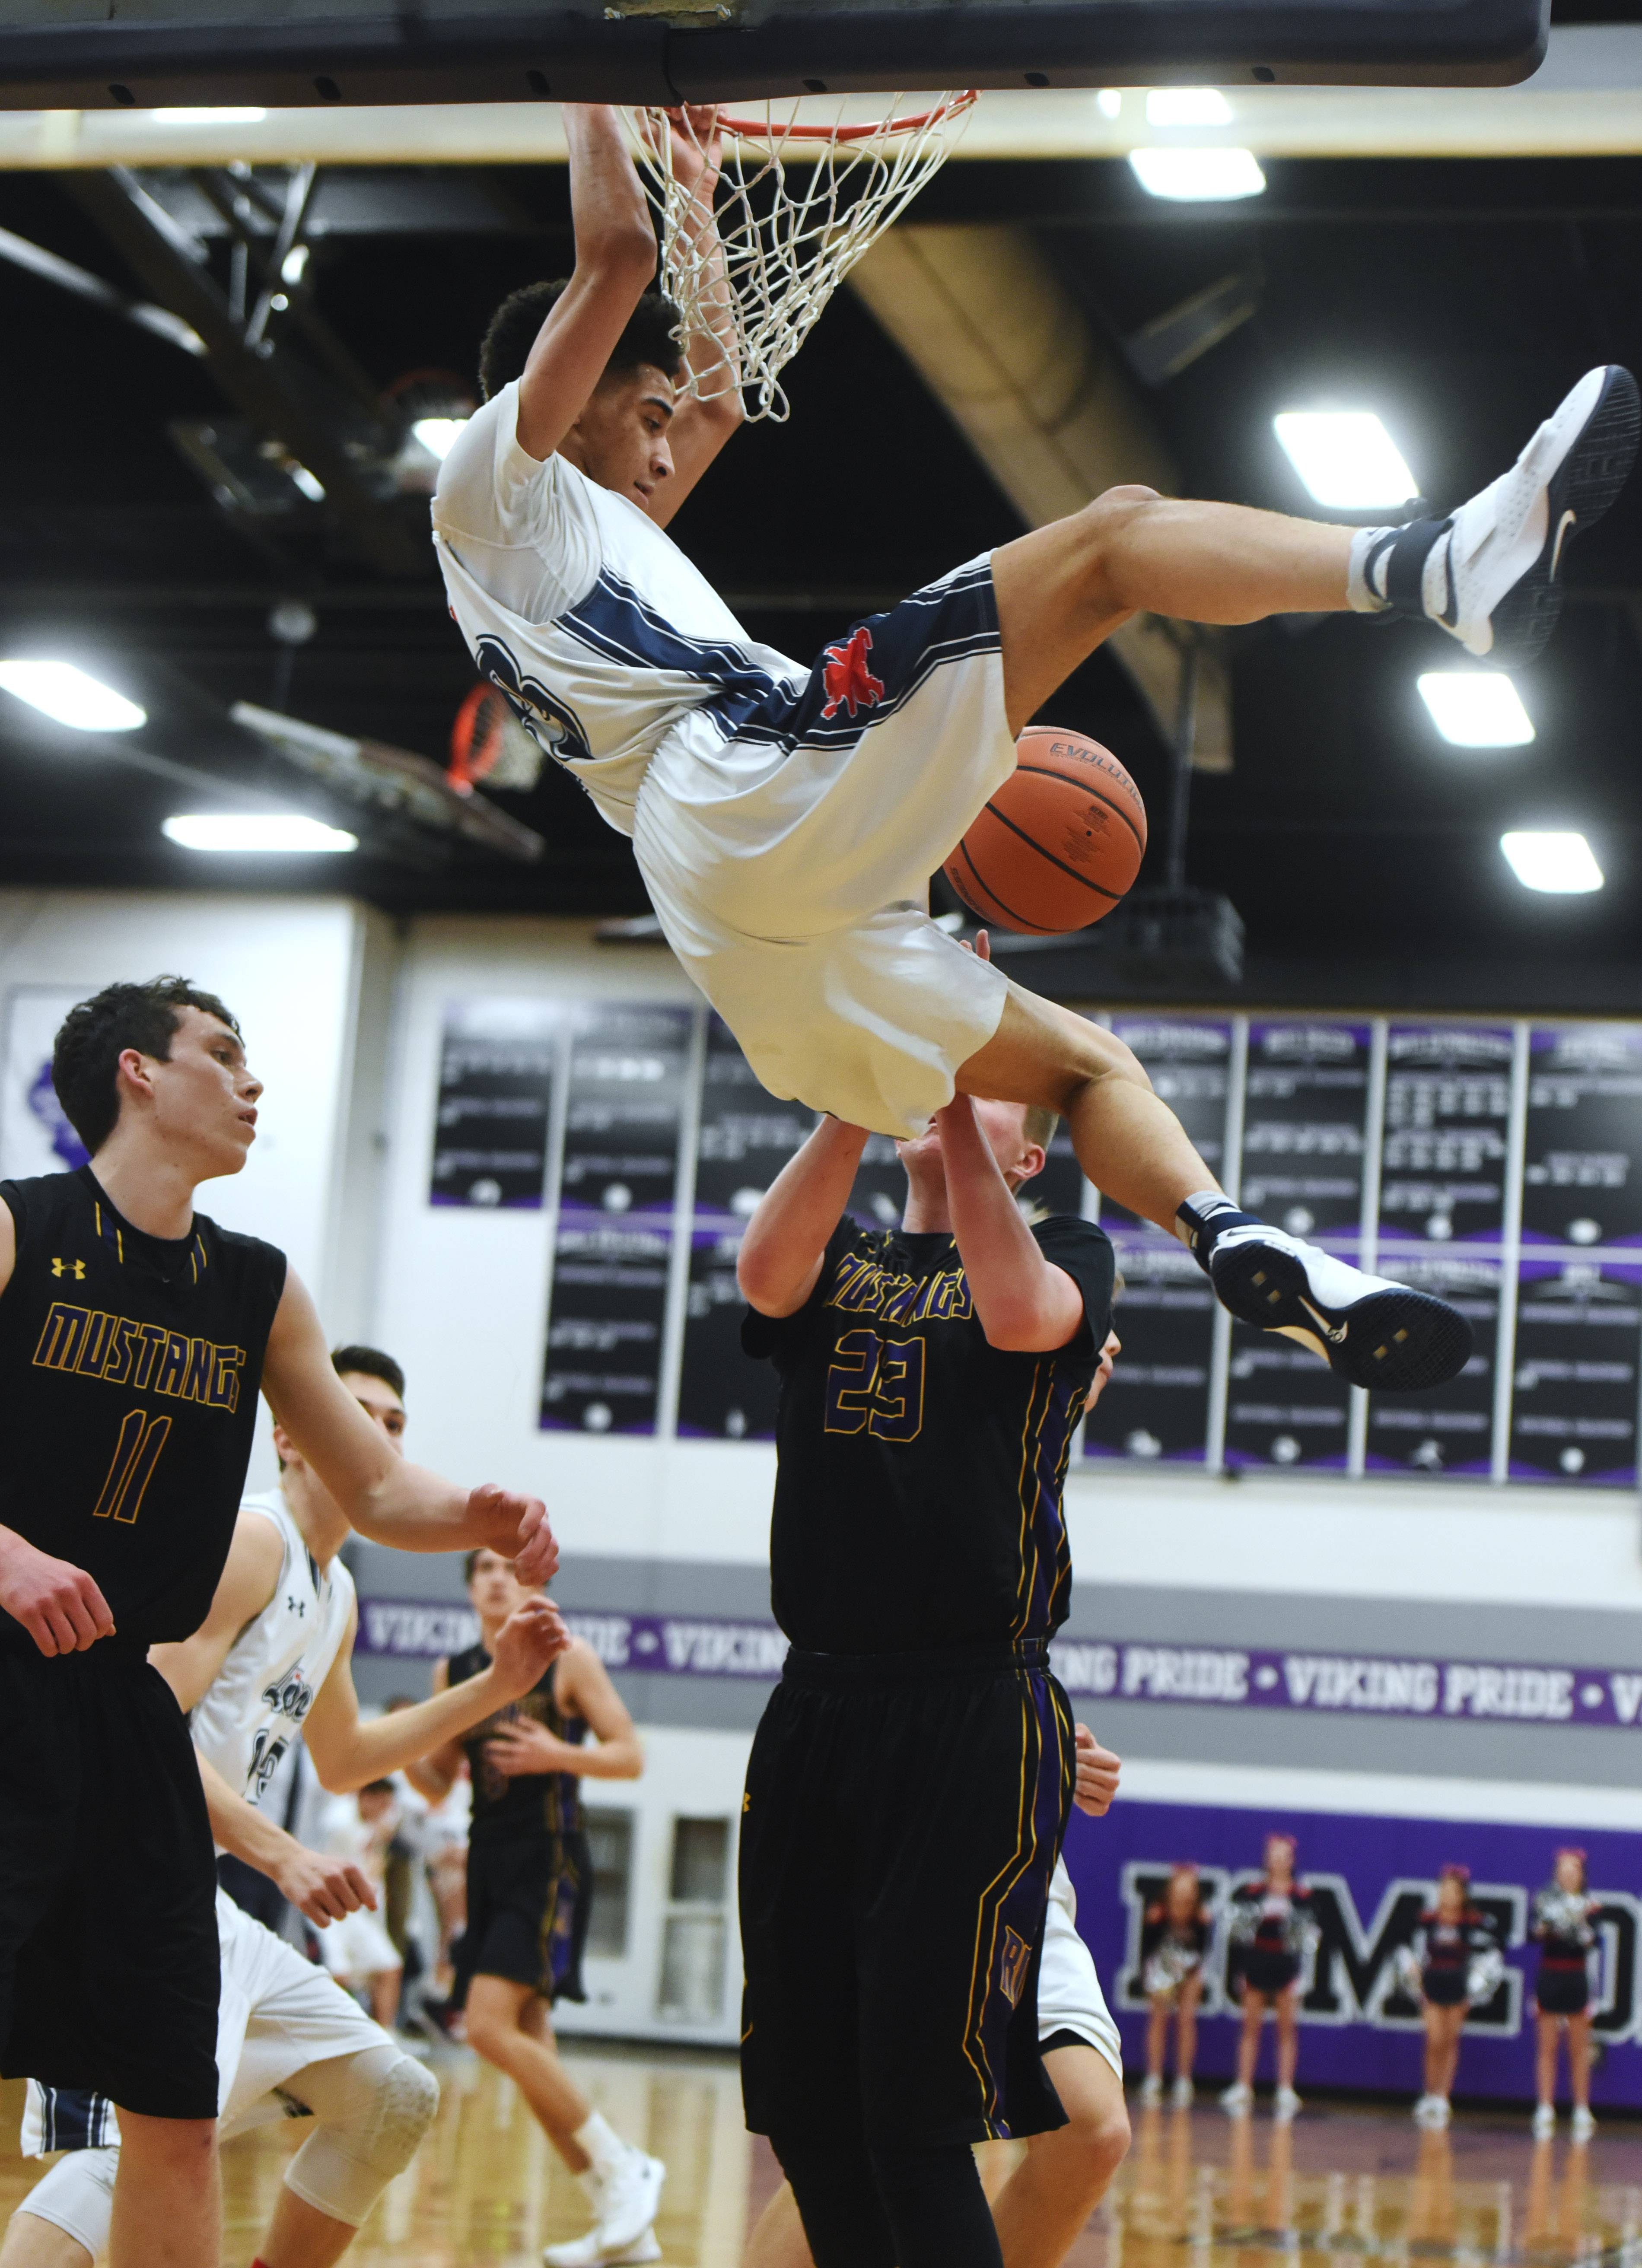 Images: Rolling Meadows vs. St. Viator, boys Class 4A regional semifinal basketball